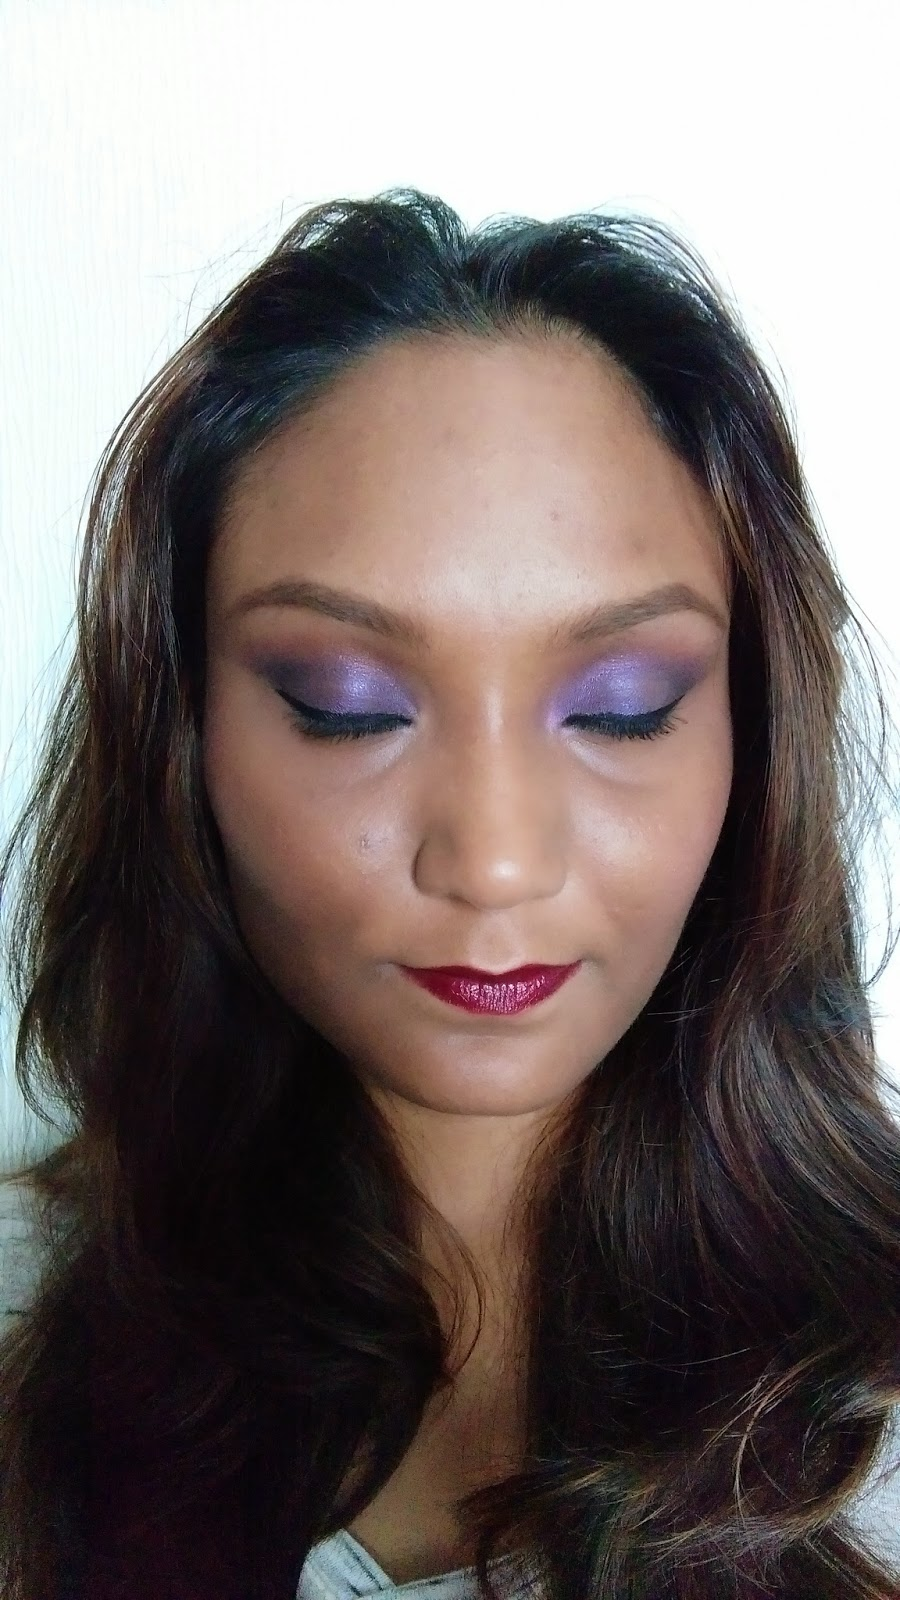 FACE OF THE DAY | PURPLE EYES